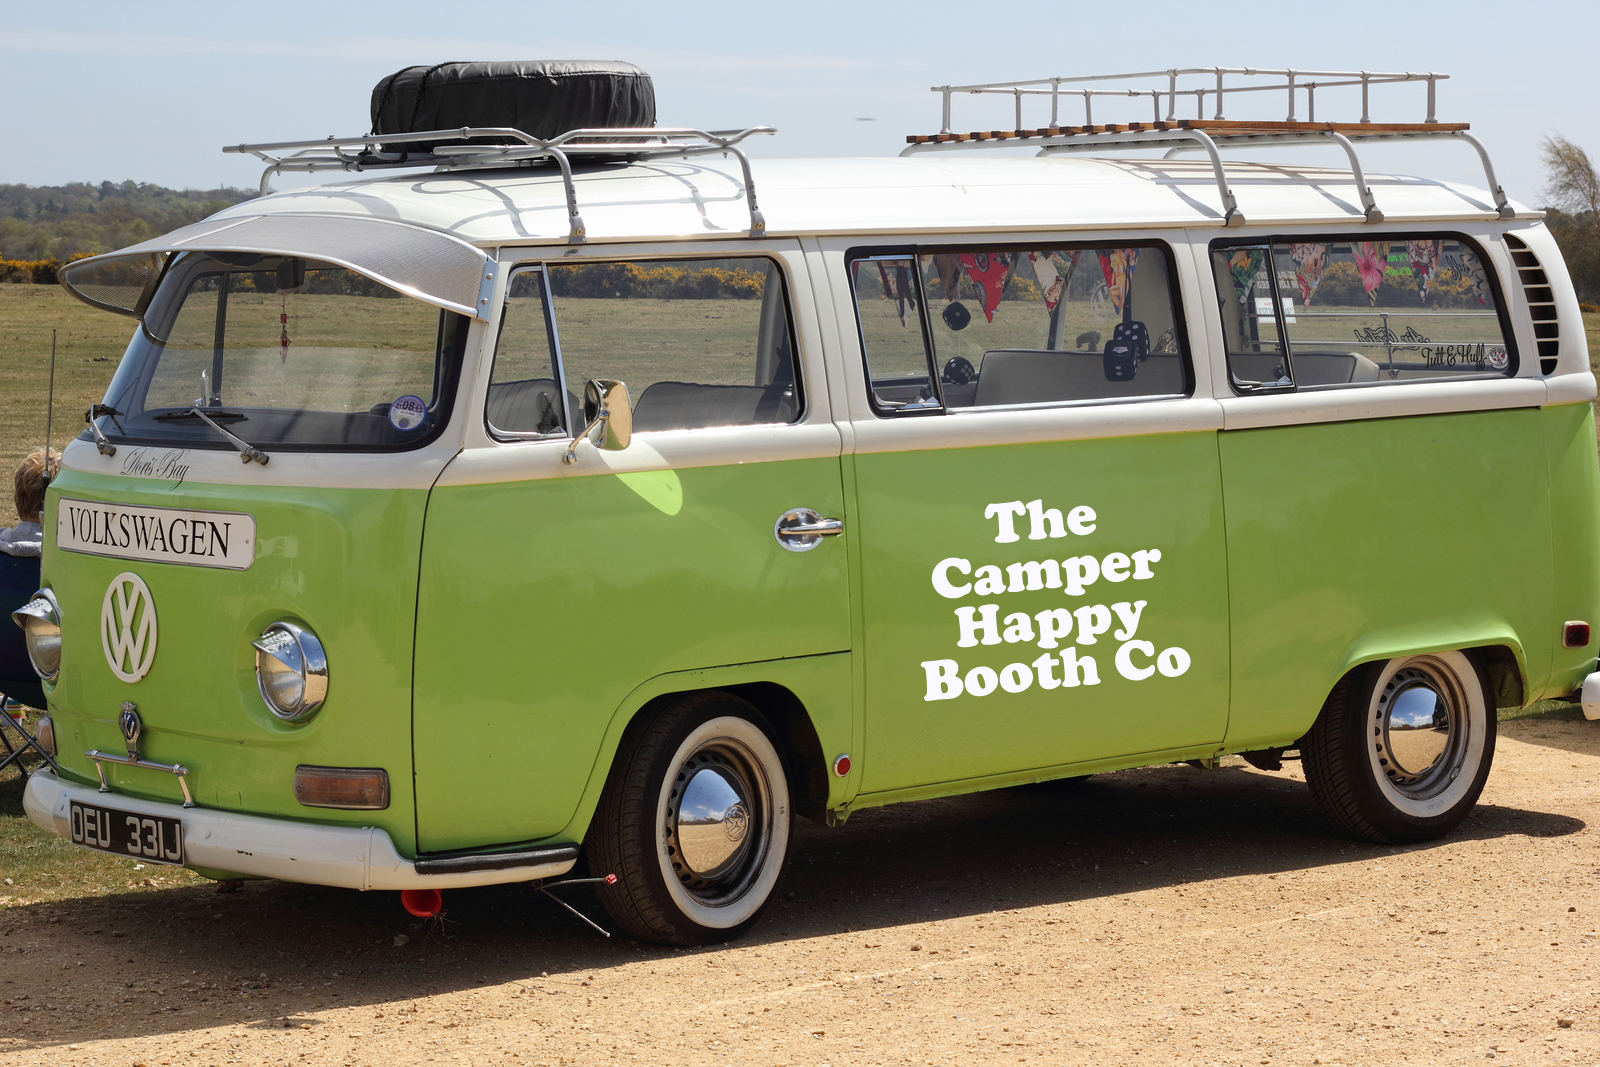 VW Camper Van | Photo booth conversion